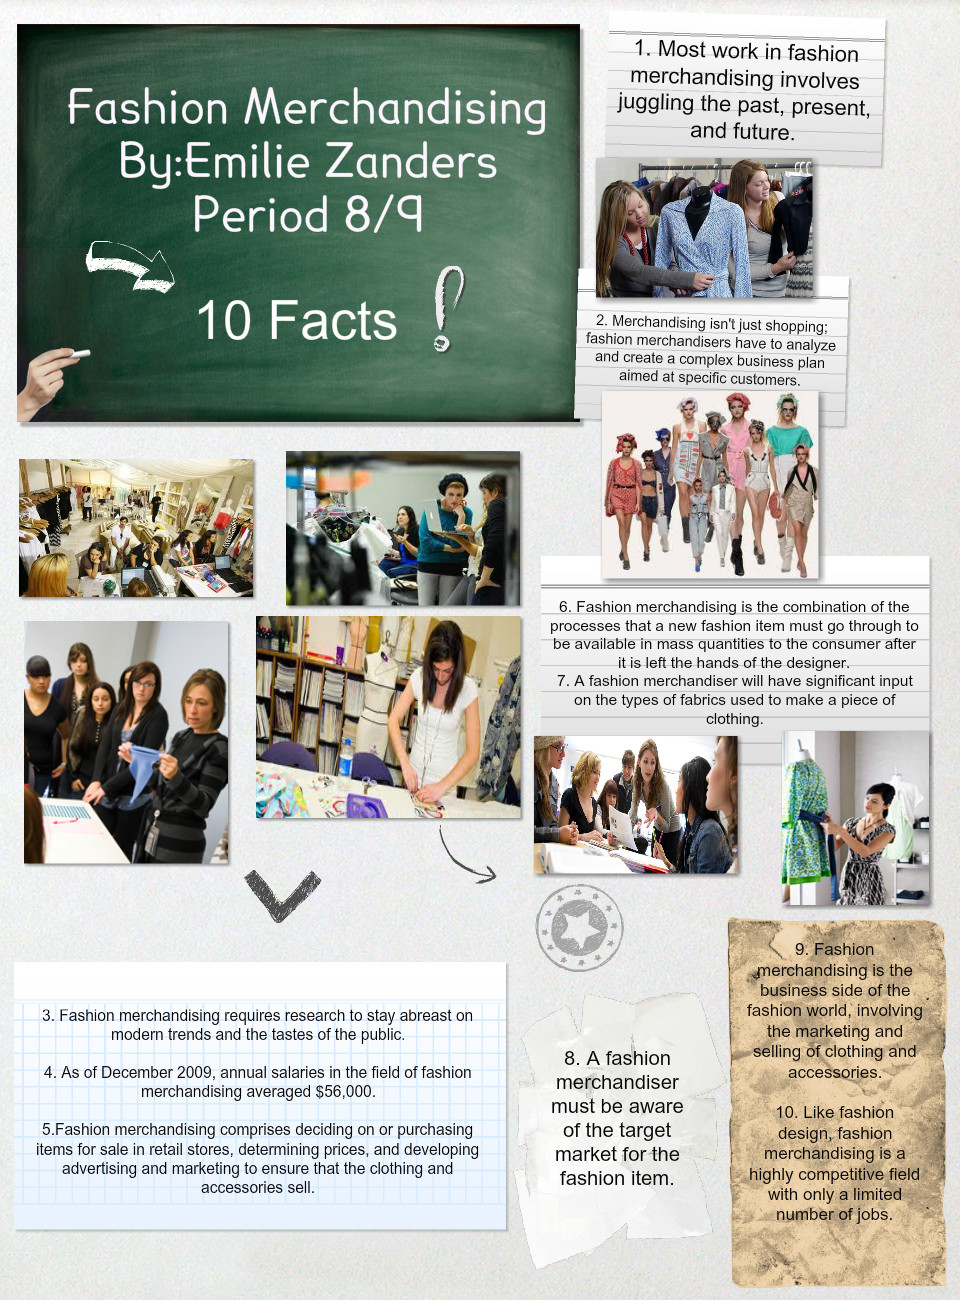 Cta Fashion Merchandising 10 Facts Text Images Music Video Glogster Edu Interactive Multimedia Posters